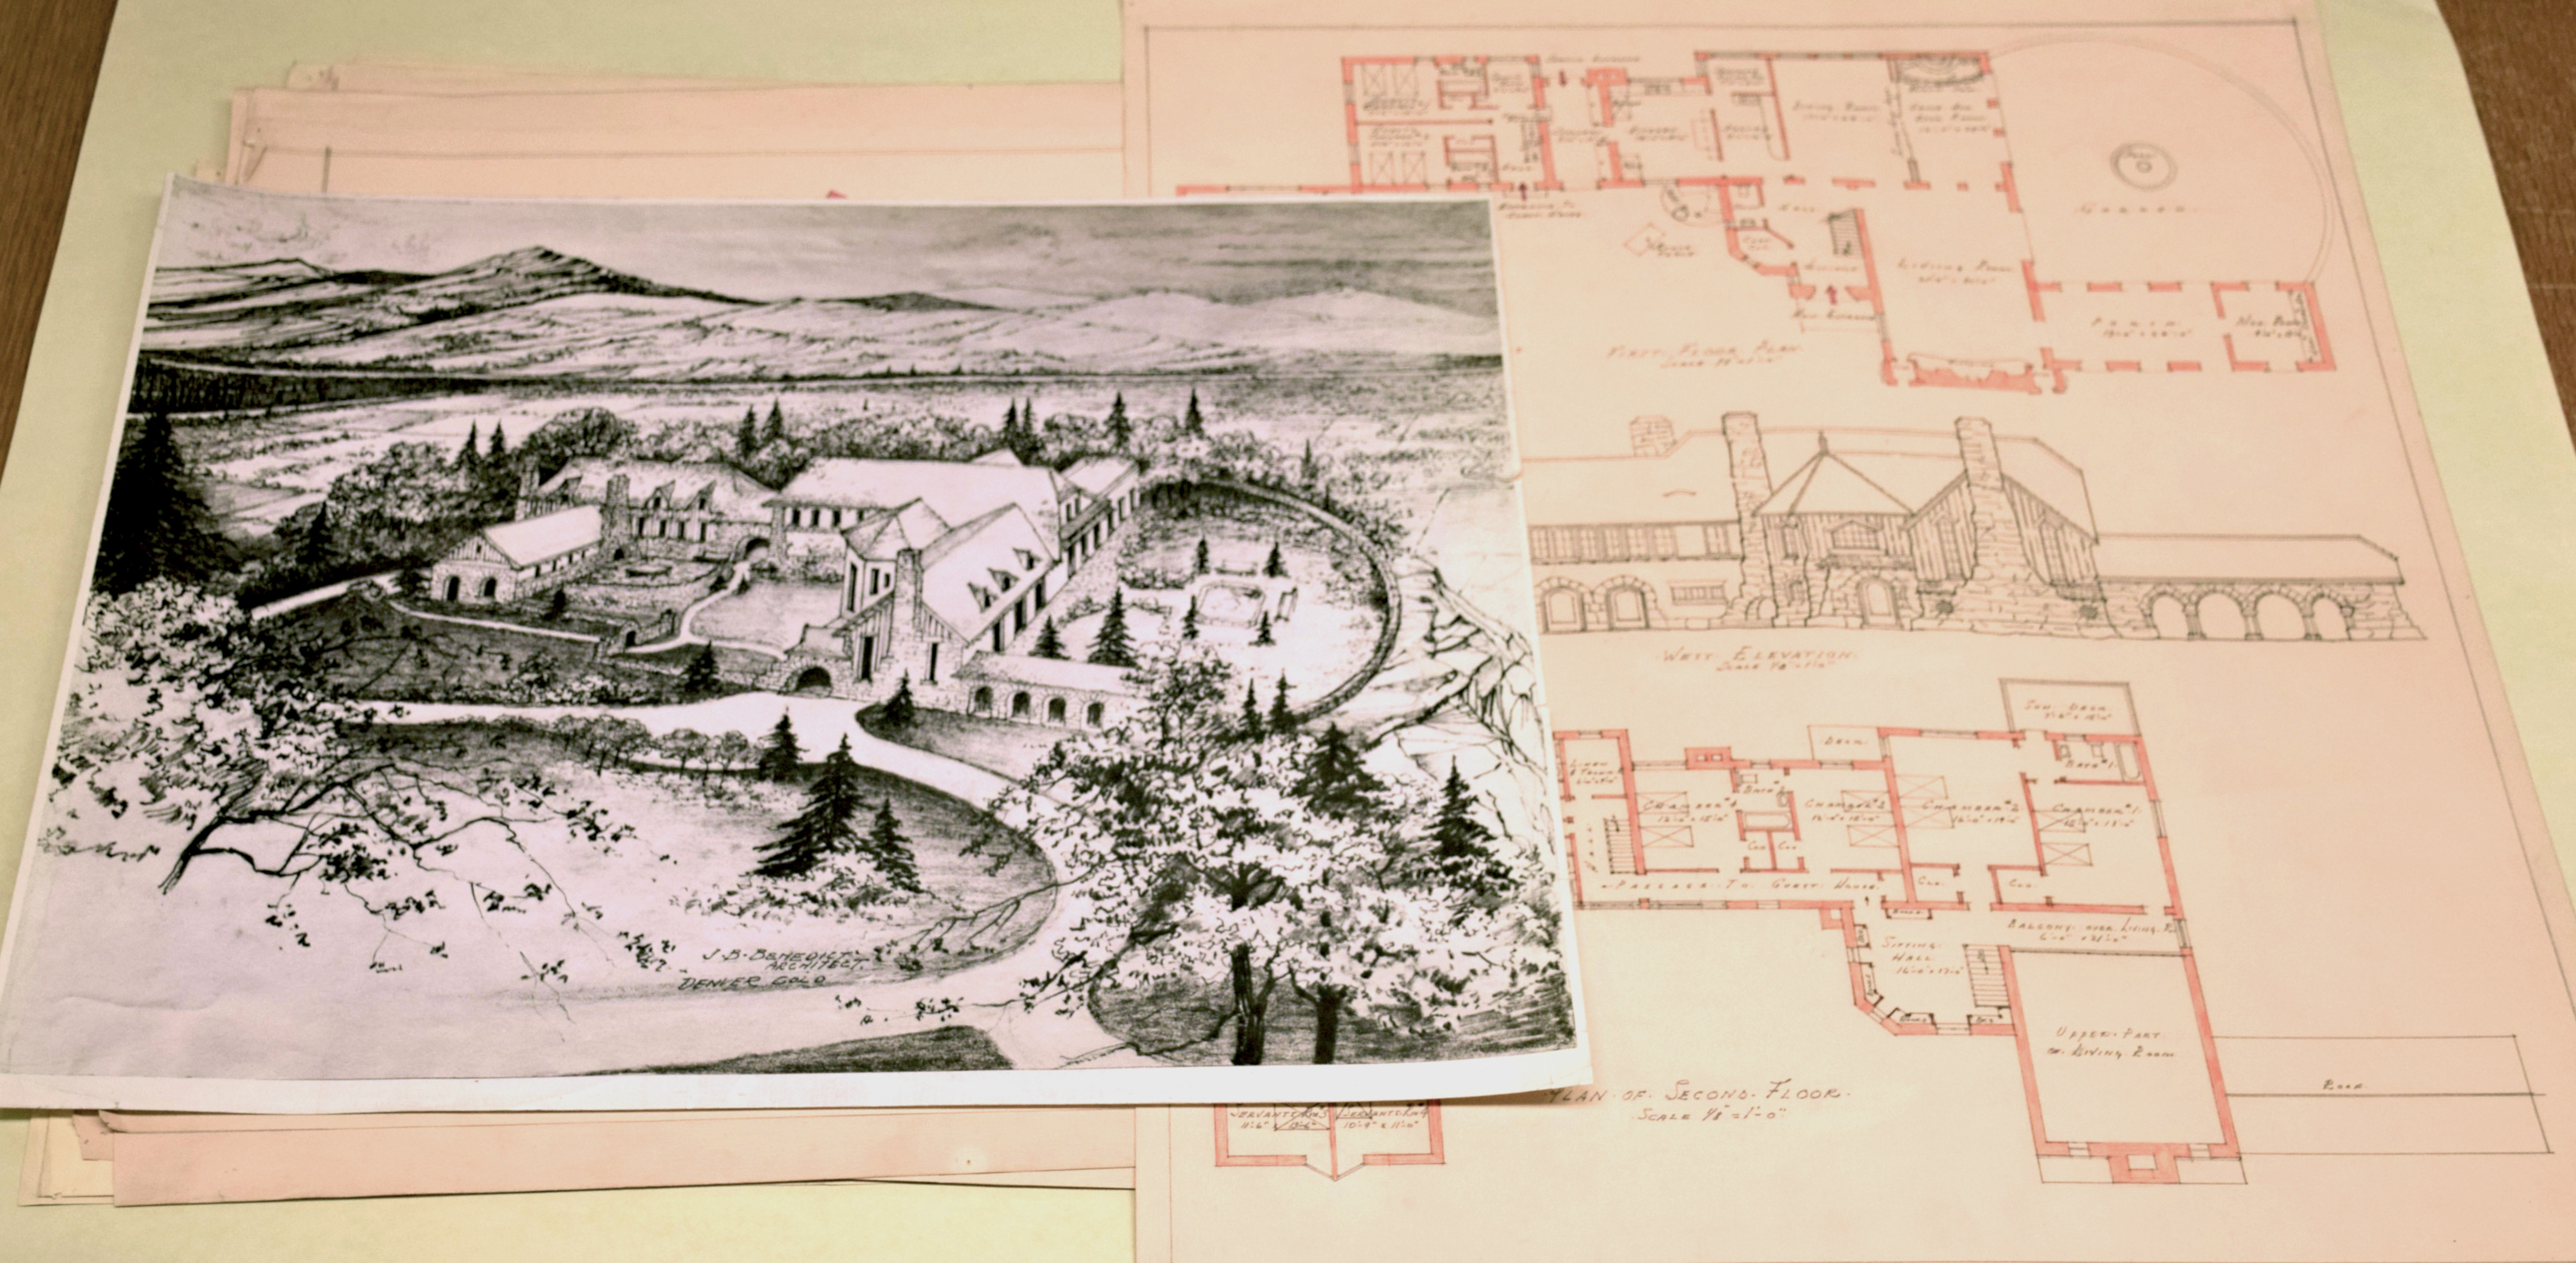 Photograph of architectural plans for a large mountain house